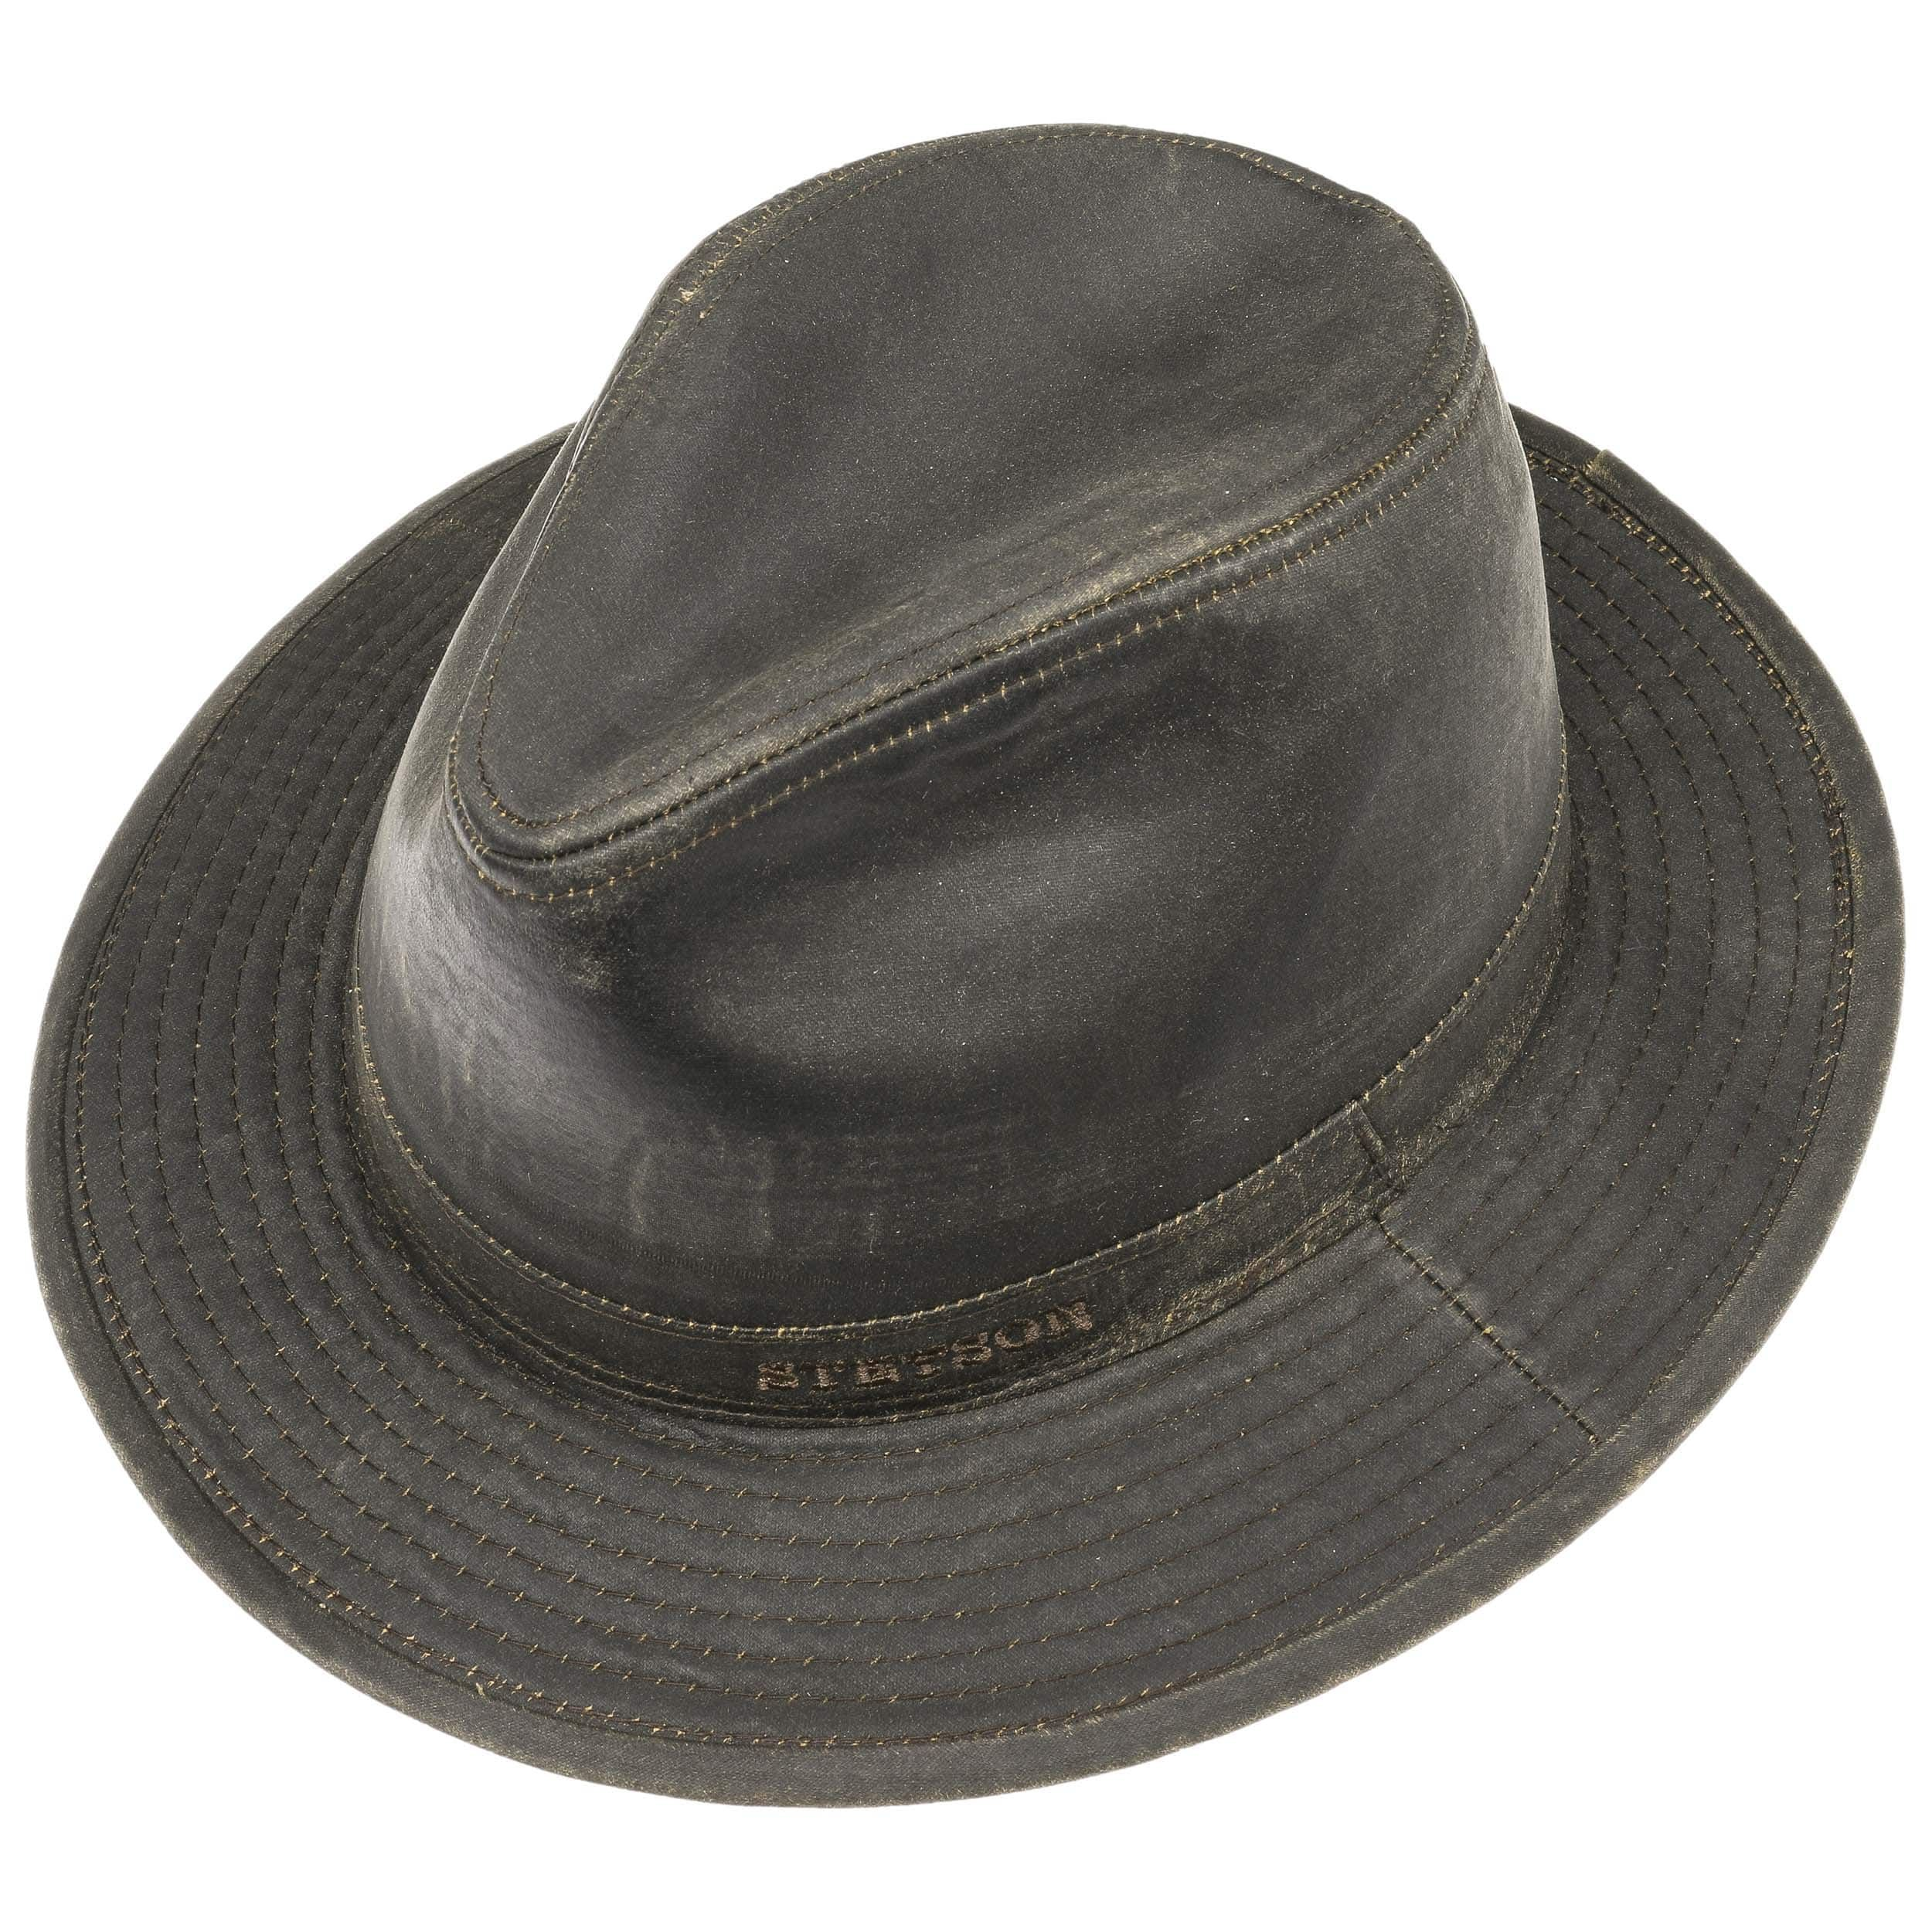 Berico Ear Flaps Traveller Hat brown